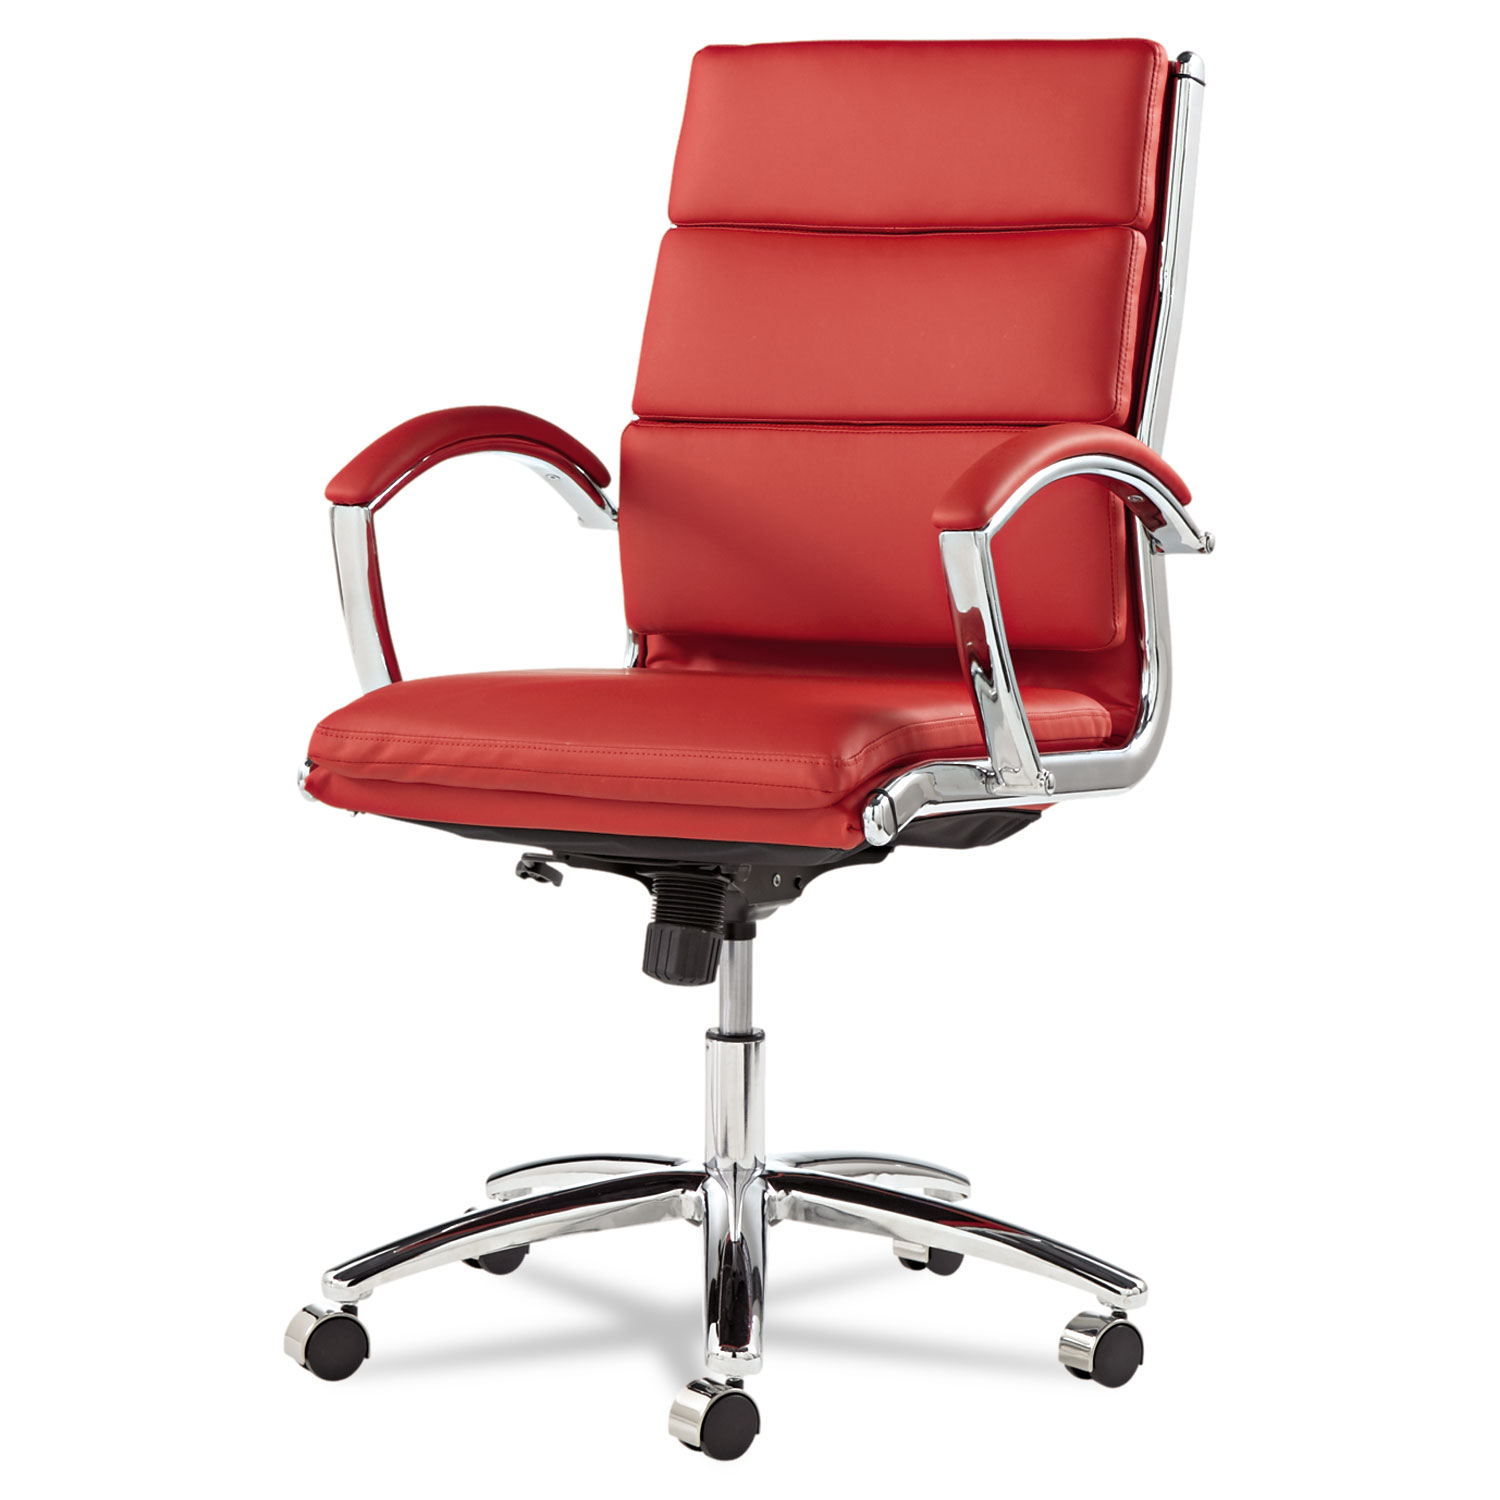 Alera Office Chairs Alera Neratoli Mid Back Slim Profile Chair Red Leather Chrome Frame